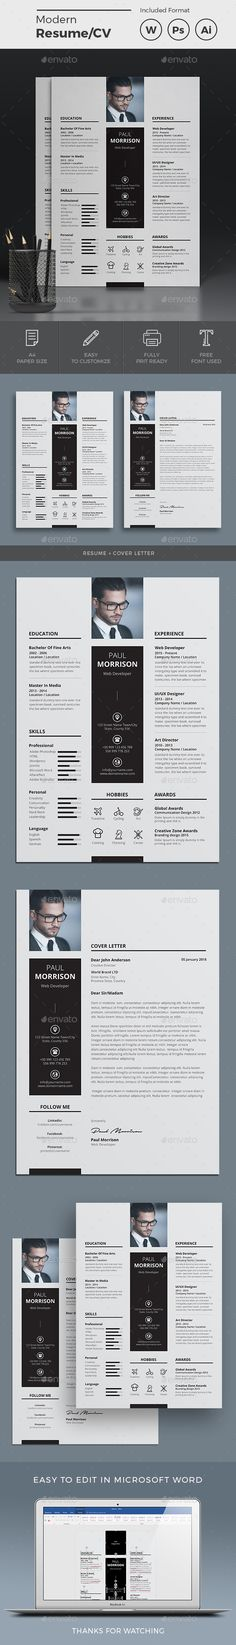 Resume A4 Template PSD, AI Illustrator, MS Word